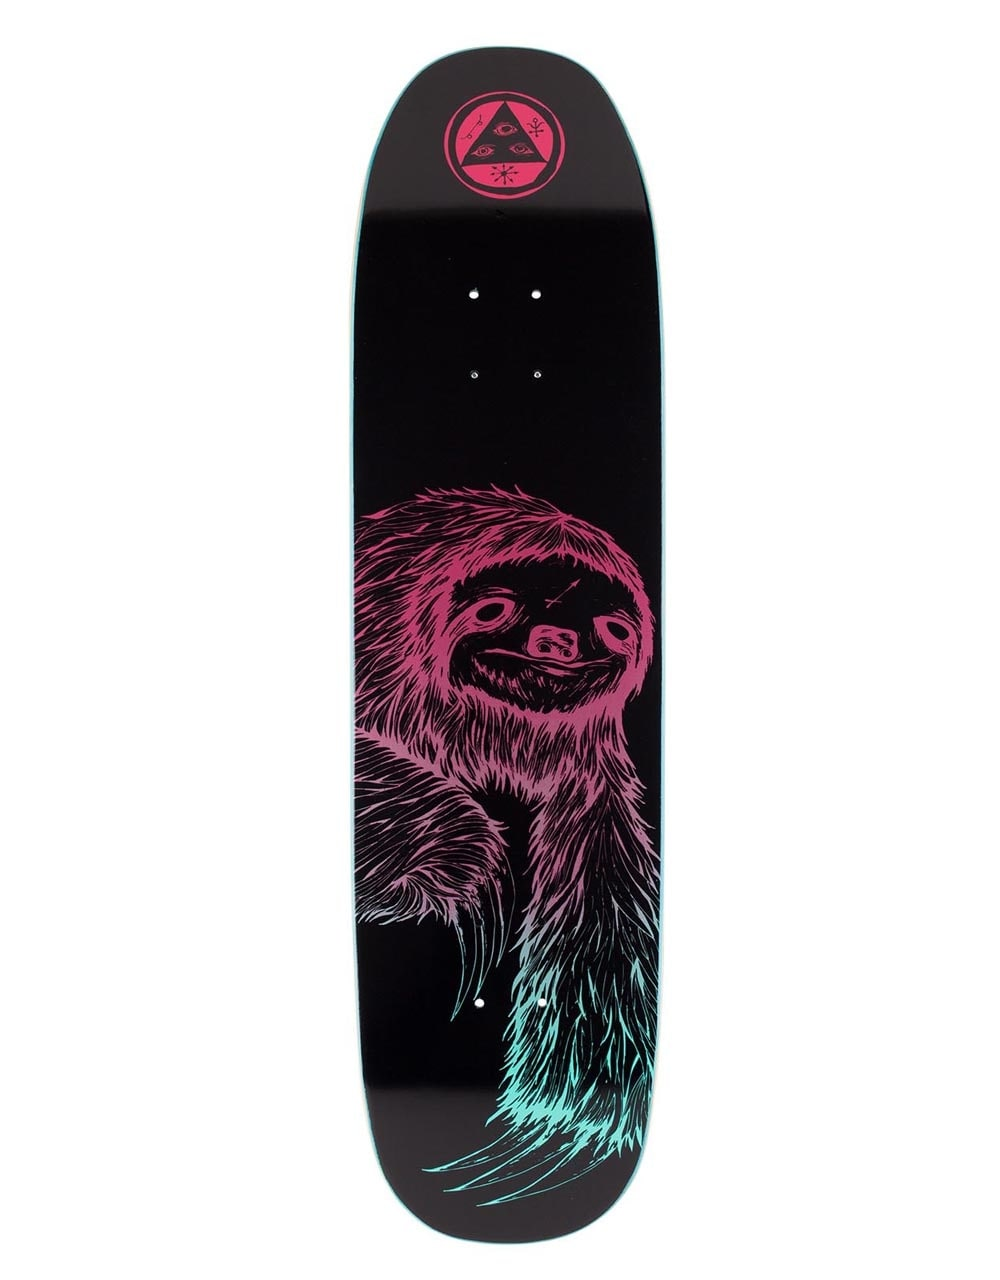 be26b228e576 Welcome Sloth 2 on Son of Moontrimmer Skateboard Deck - 8.25